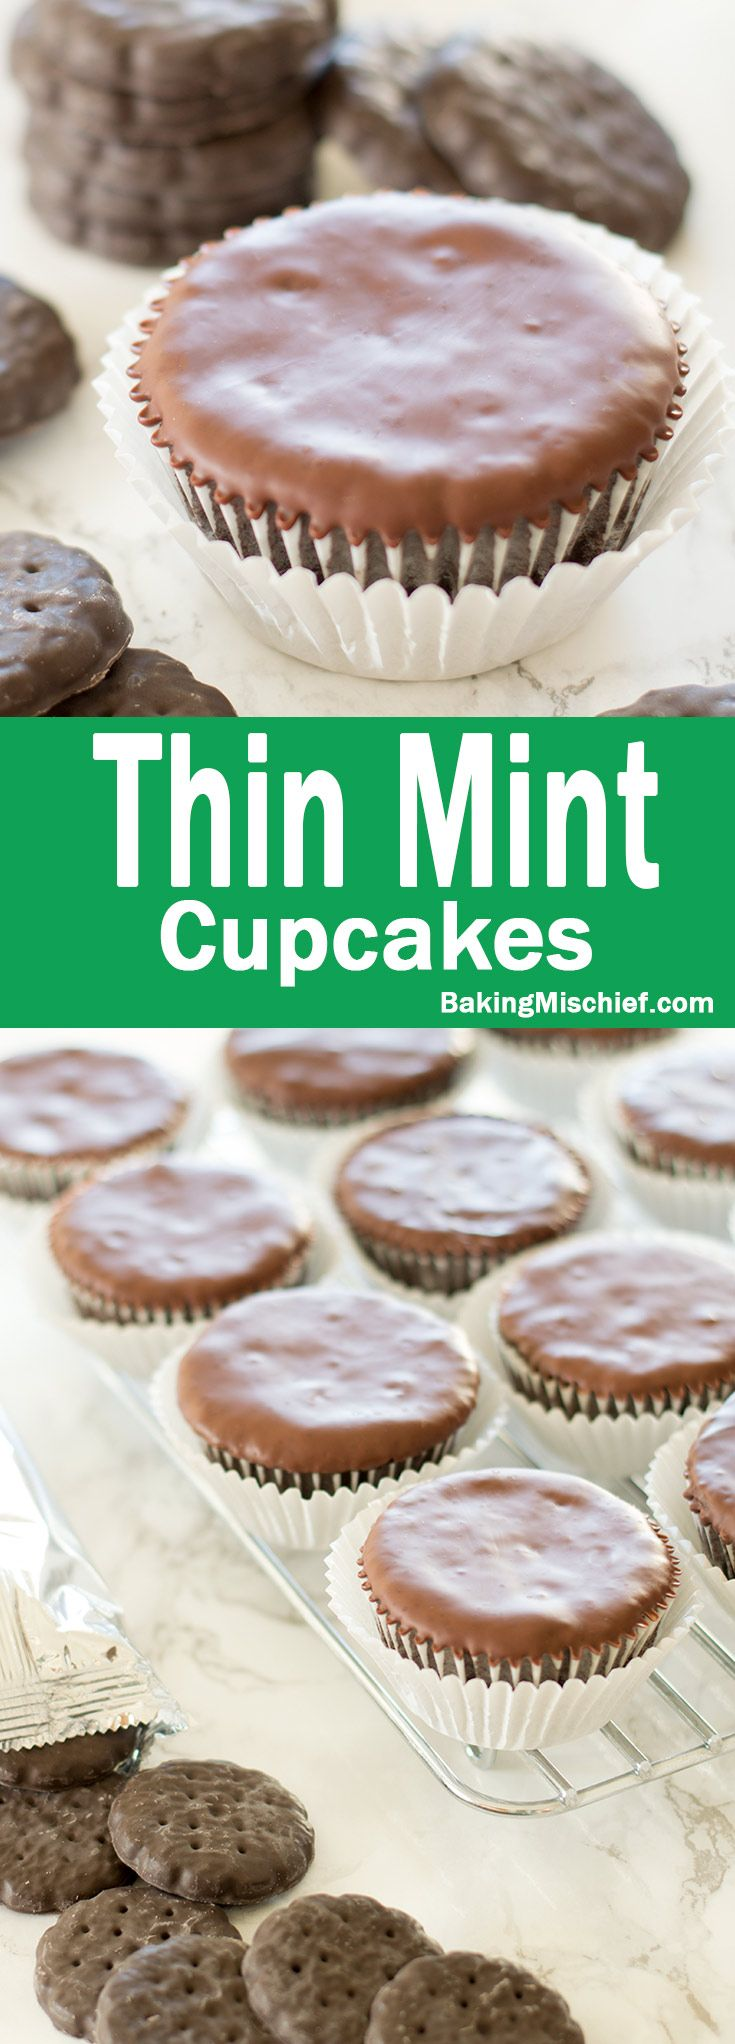 Moist chocolate and peppermint cake covered with a smooth chocolate coating. A delicious cupcake version of the most popular Girl Scout Cookie. Recipe includes nutritional information and small-batch and freezer instructions. From BakingMischief.com